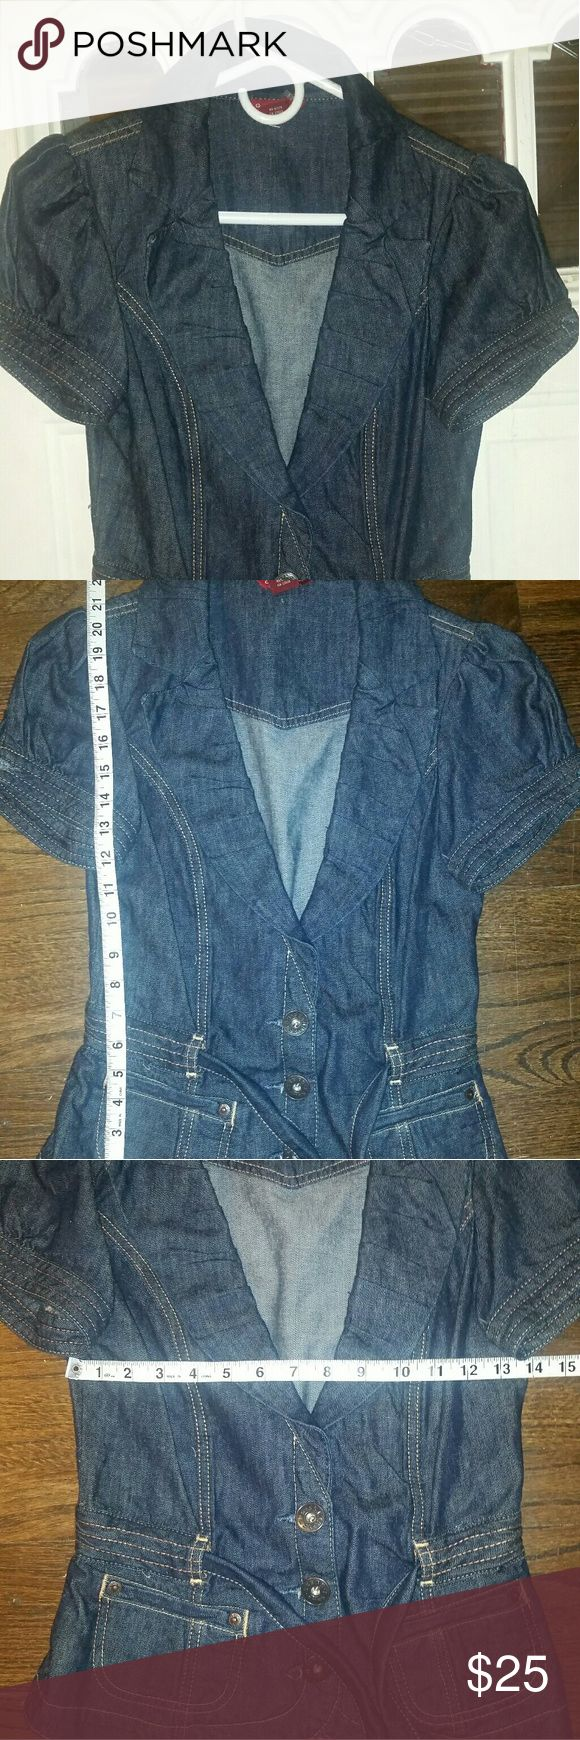 GUESS M Blue Denim Short Sleeve Jeans Blazer Please contact me with any questions, comments, or concerns Guess by Marciano Jackets & Coats Jean Jackets